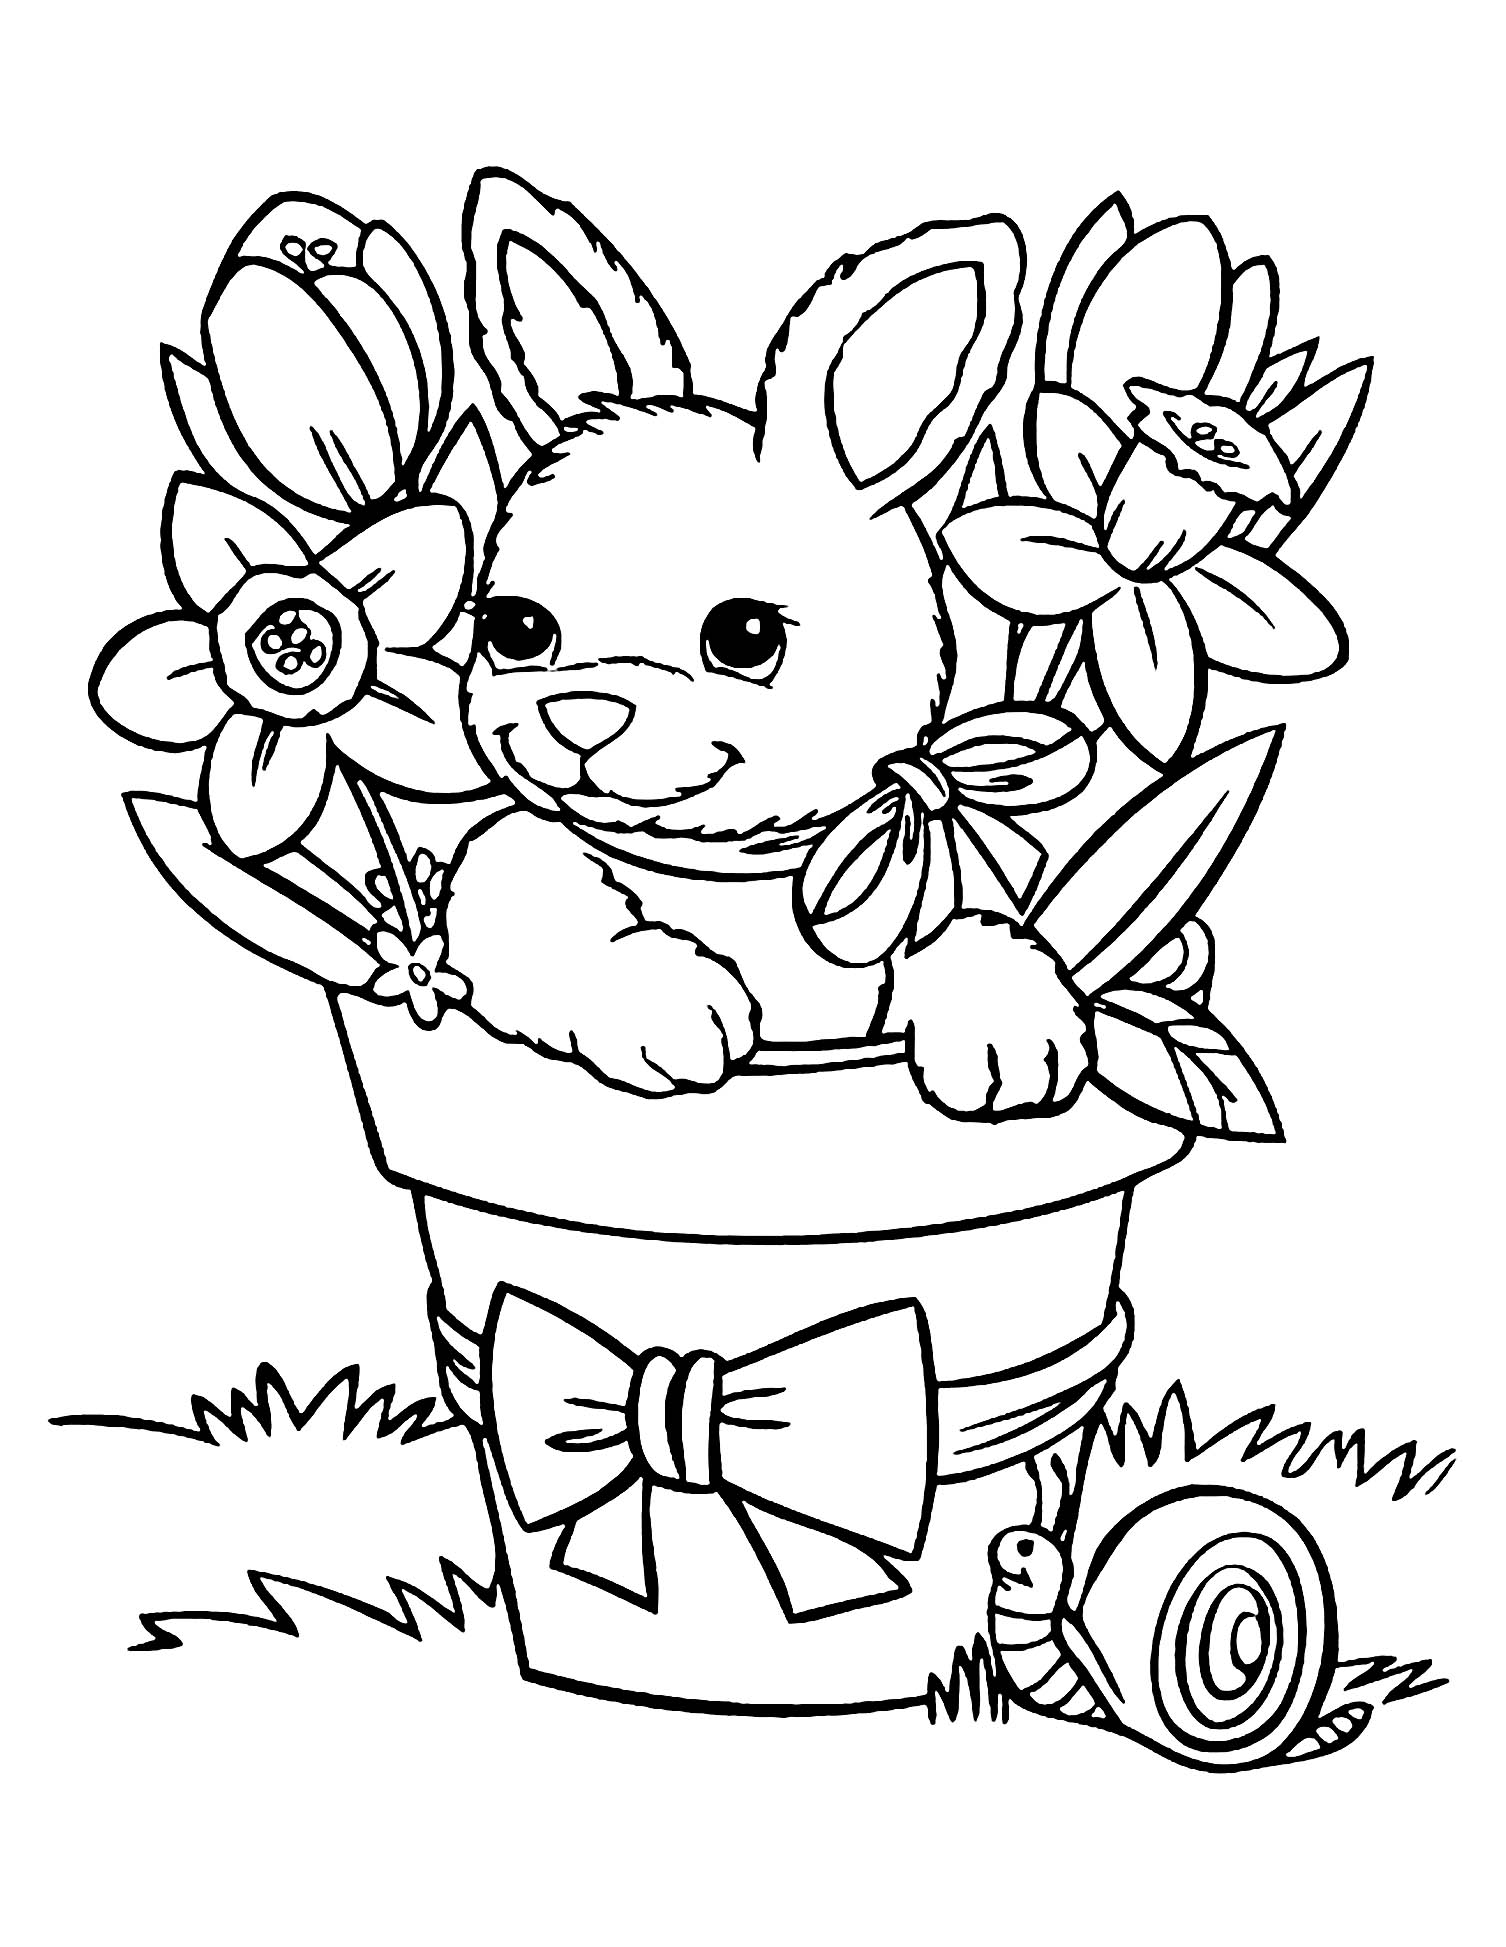 colouring pages of rabbit bunny coloring pages best coloring pages for kids of colouring pages rabbit